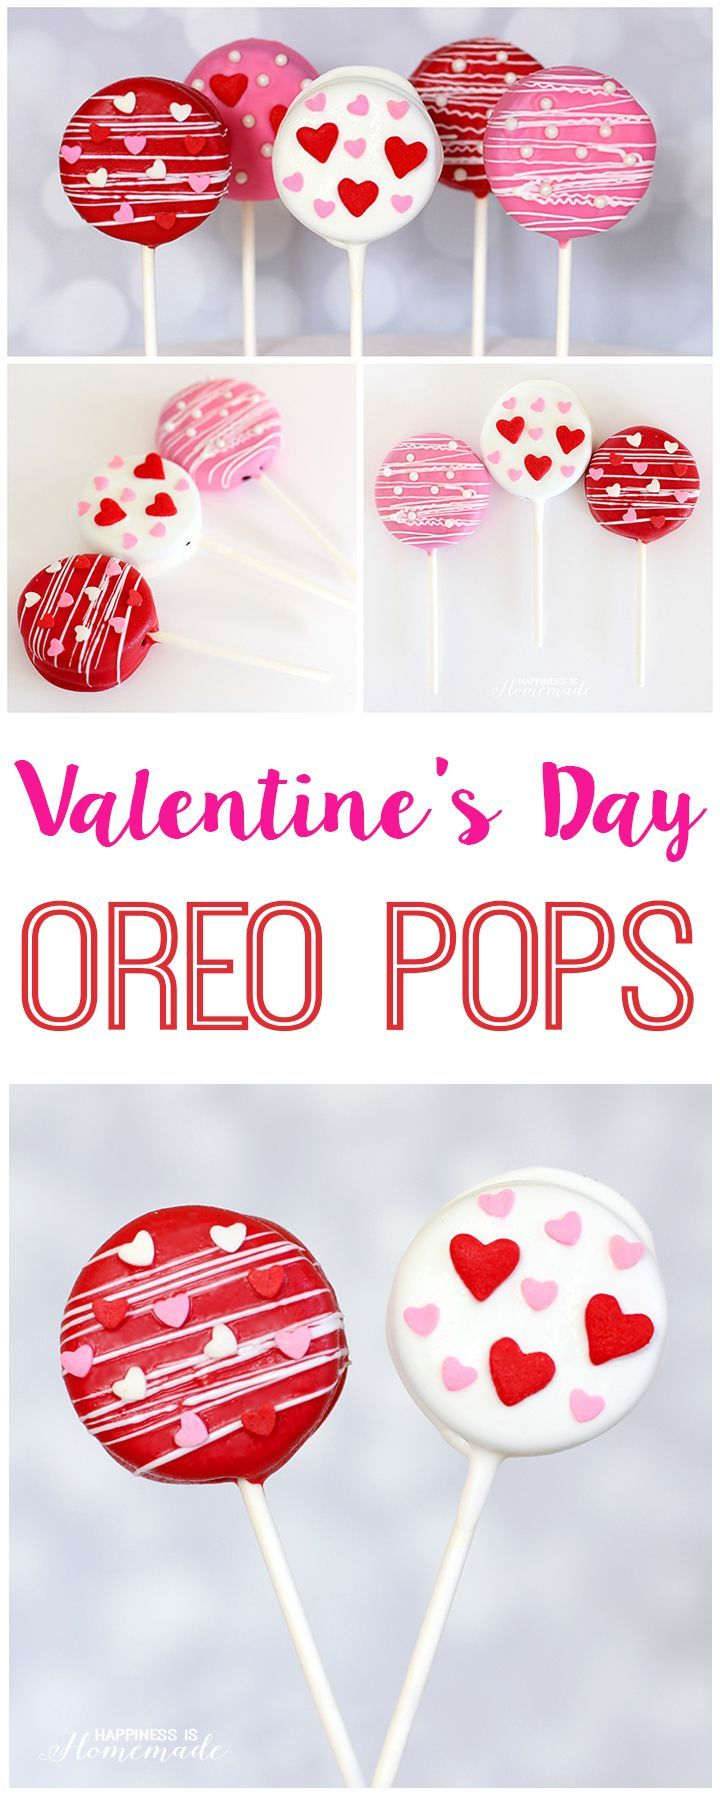 Super Cute Valentine\'s Day Oreo Pops! - Happiness is Homemade ...